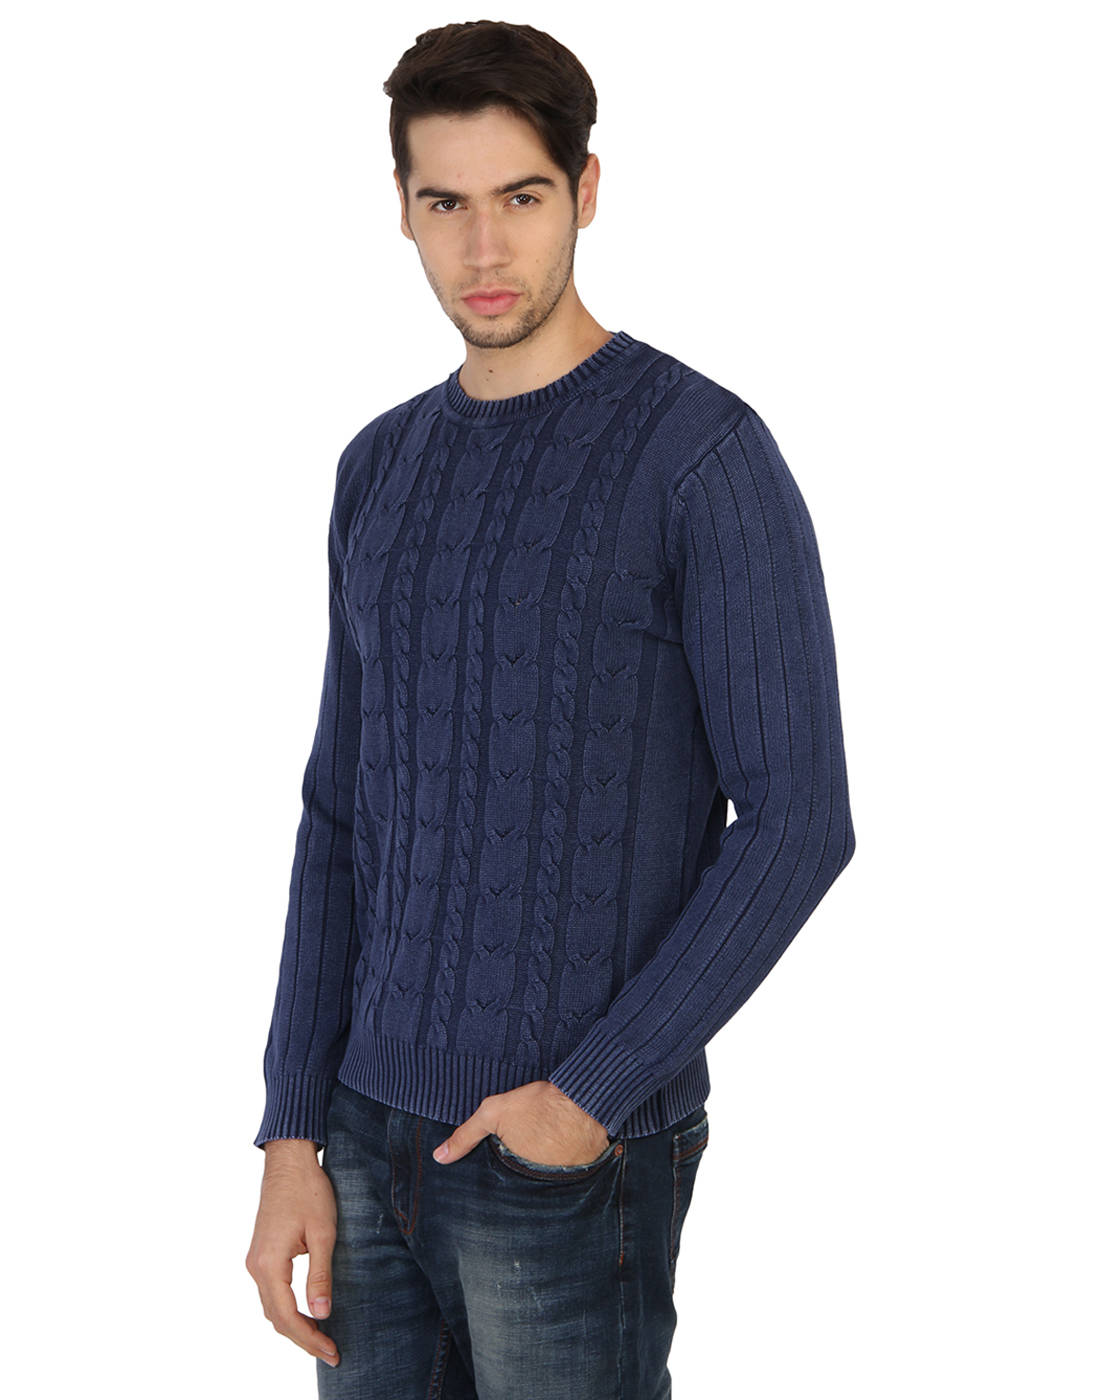 Human Men's Blue Striped Sweater